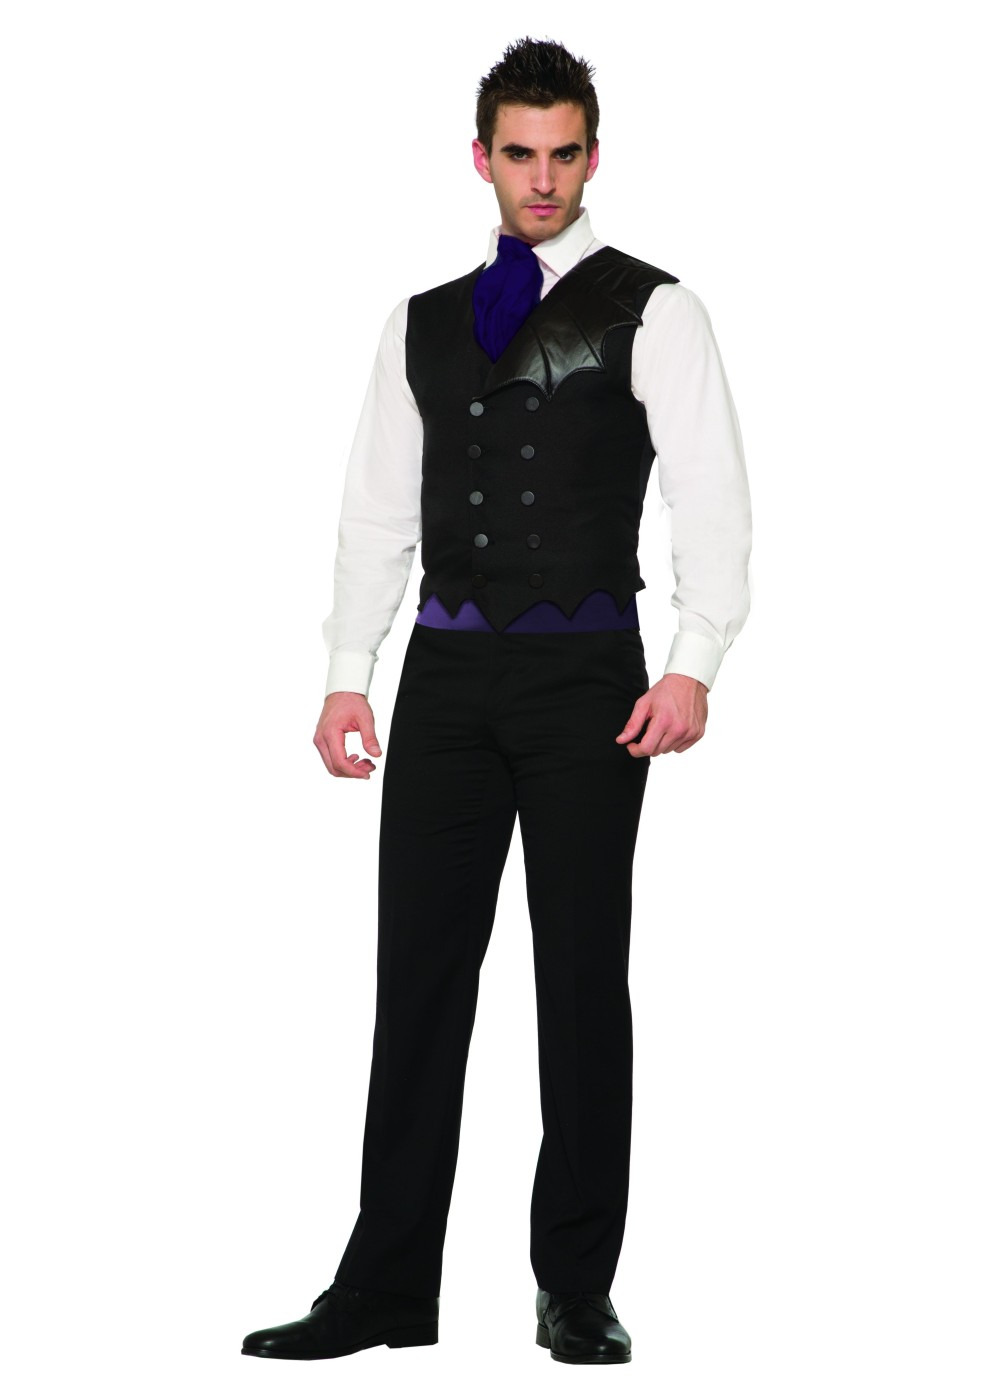 Bat Costume Men Vest - Holiday Costumes - New for 2017